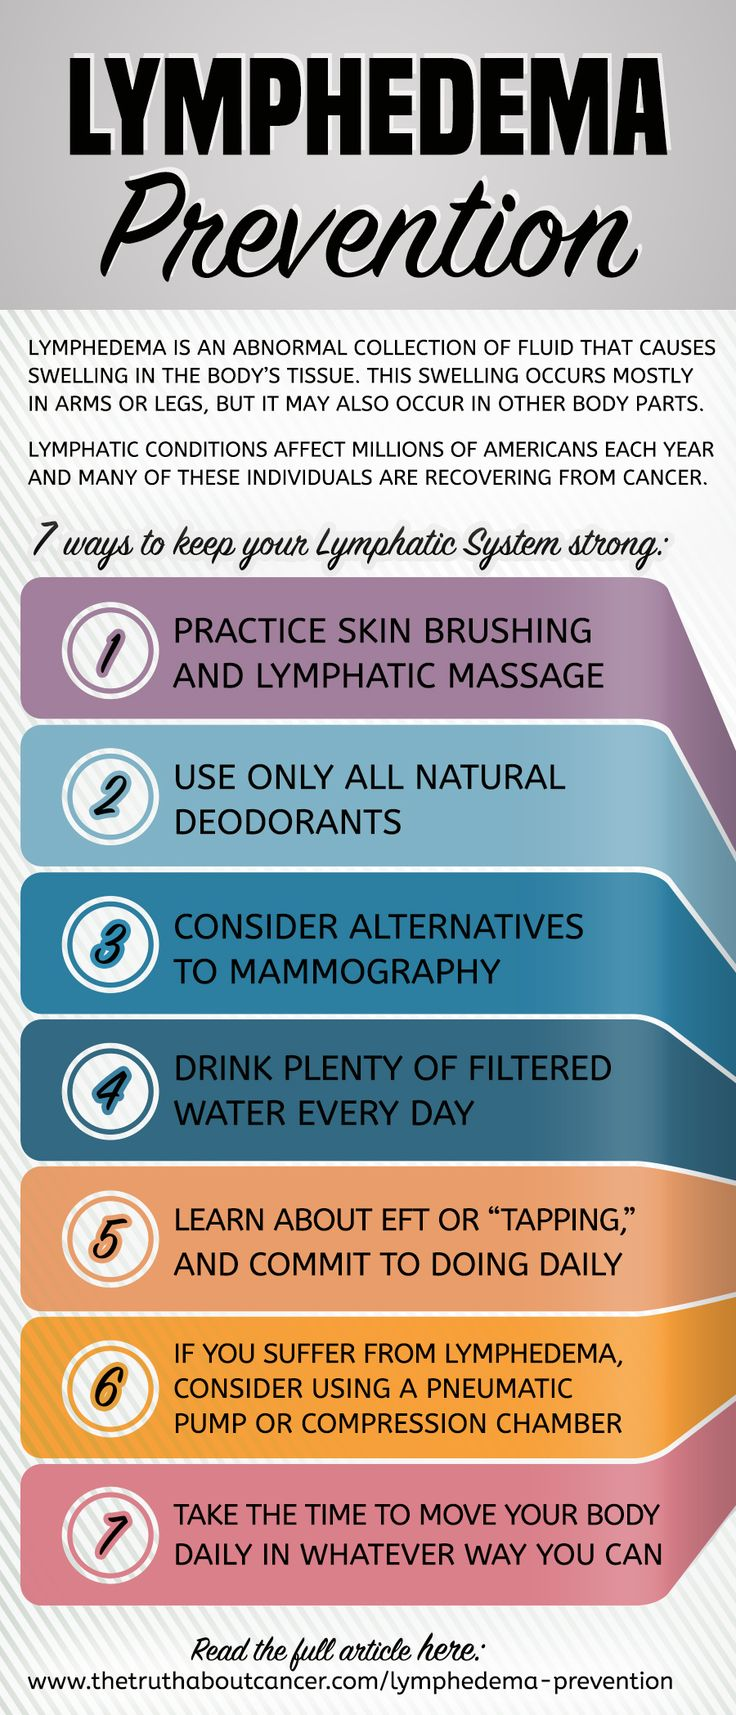 March is Lymphedema Awareness Month. Those who have had conventional cancer treatment such as radiation therapy are always at risk for developing this sometimes debilitating condition. Breast cancer patients who have gone through radiation, chemotherapy, and especially lymph node removal surgery are at an even higher risk. Get the scoop on lymphedema prevention & 7 ways to keep your lymph system humming. Click on the list above to read the full article.